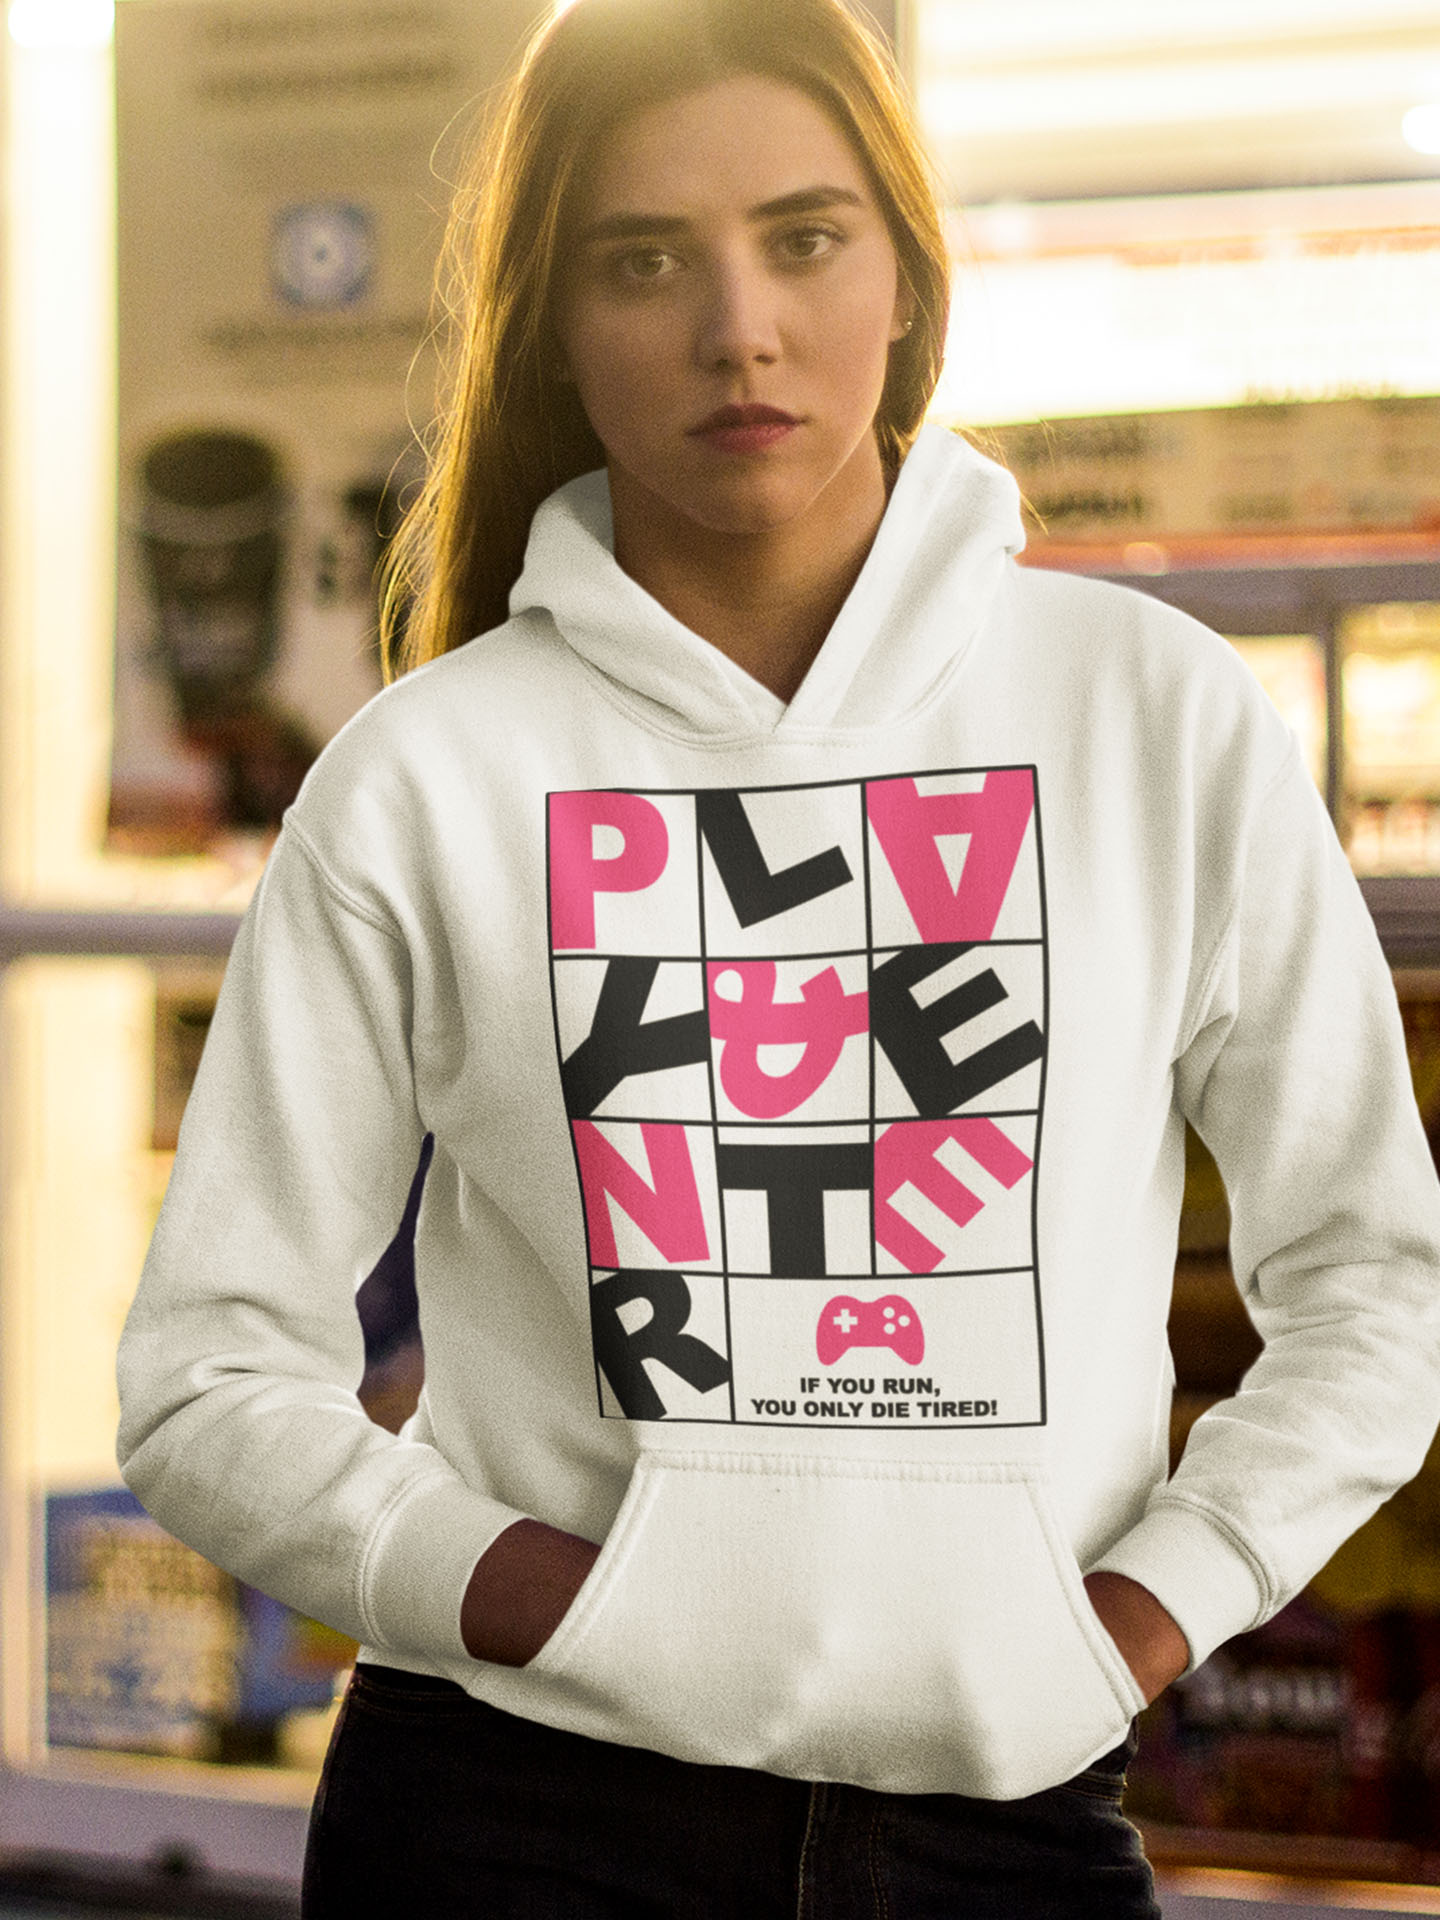 Spredshirt-Prints-Trailfire_0053_young-white-girl-wearing-a-pullover-hoodie-while-outside-of-the-supermarket-mockup-a135